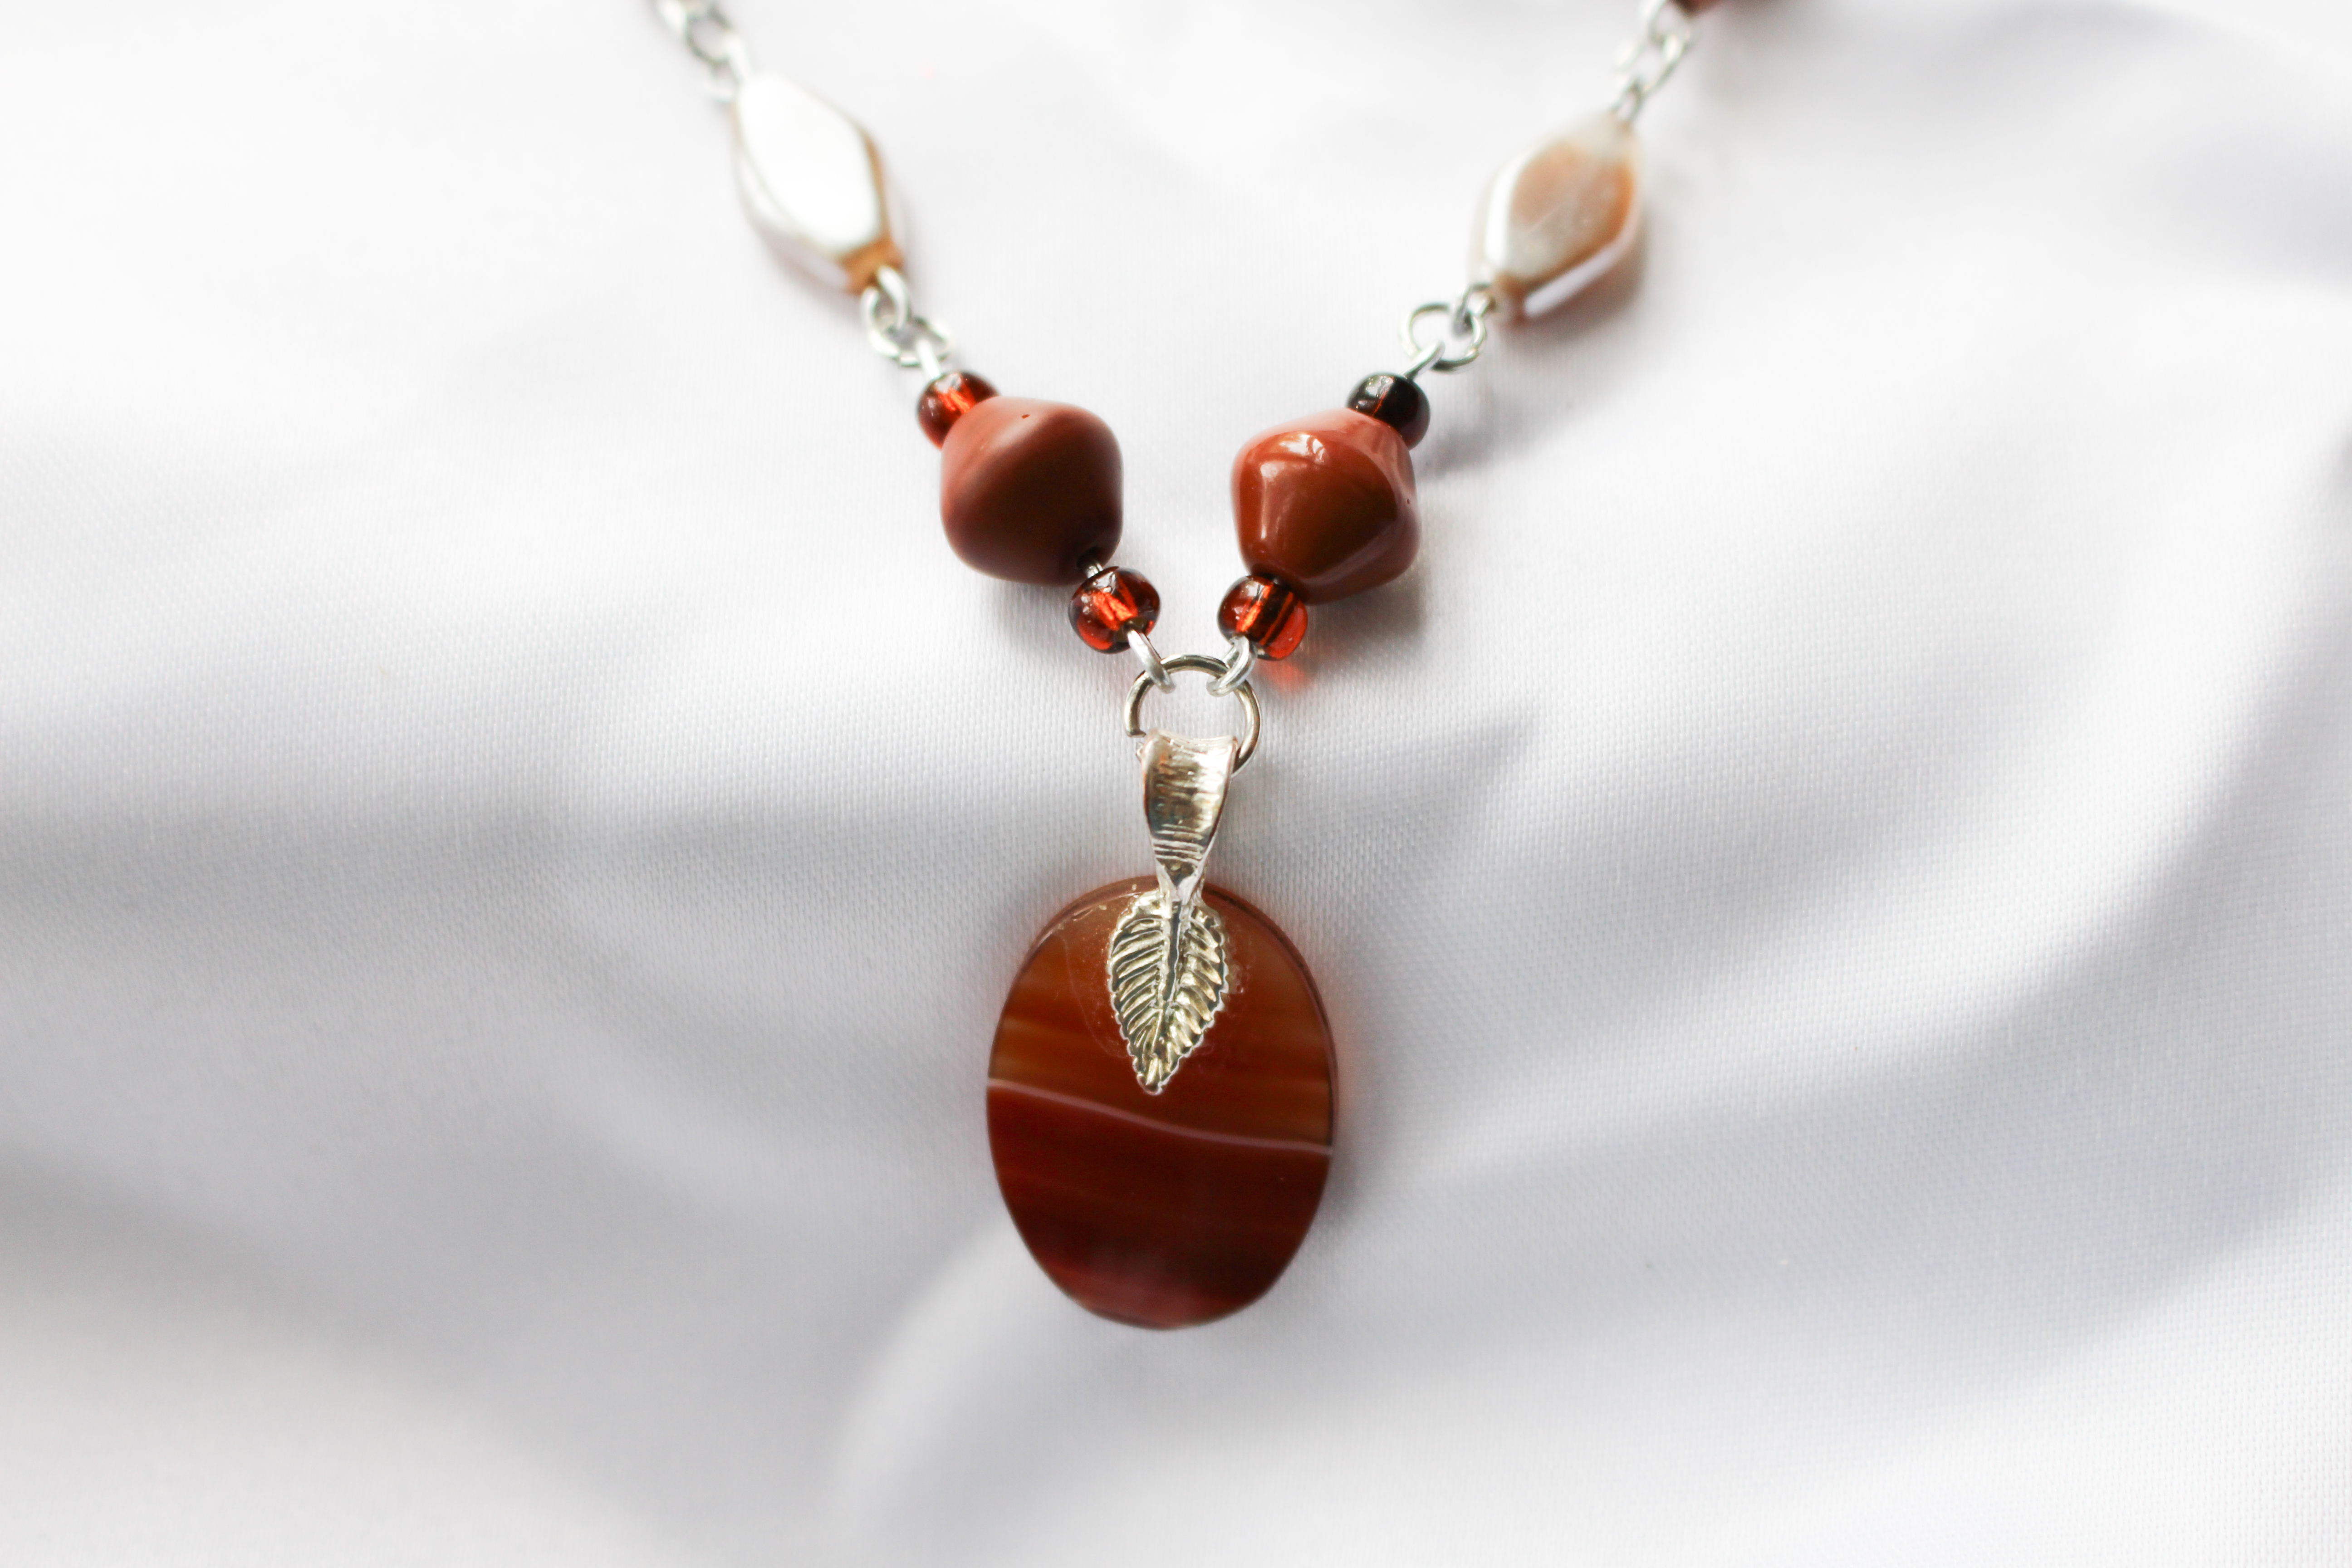 Orange Agate Pendant on SpiceColor Beaded Necklace by DanikaMilles on DeviantArt